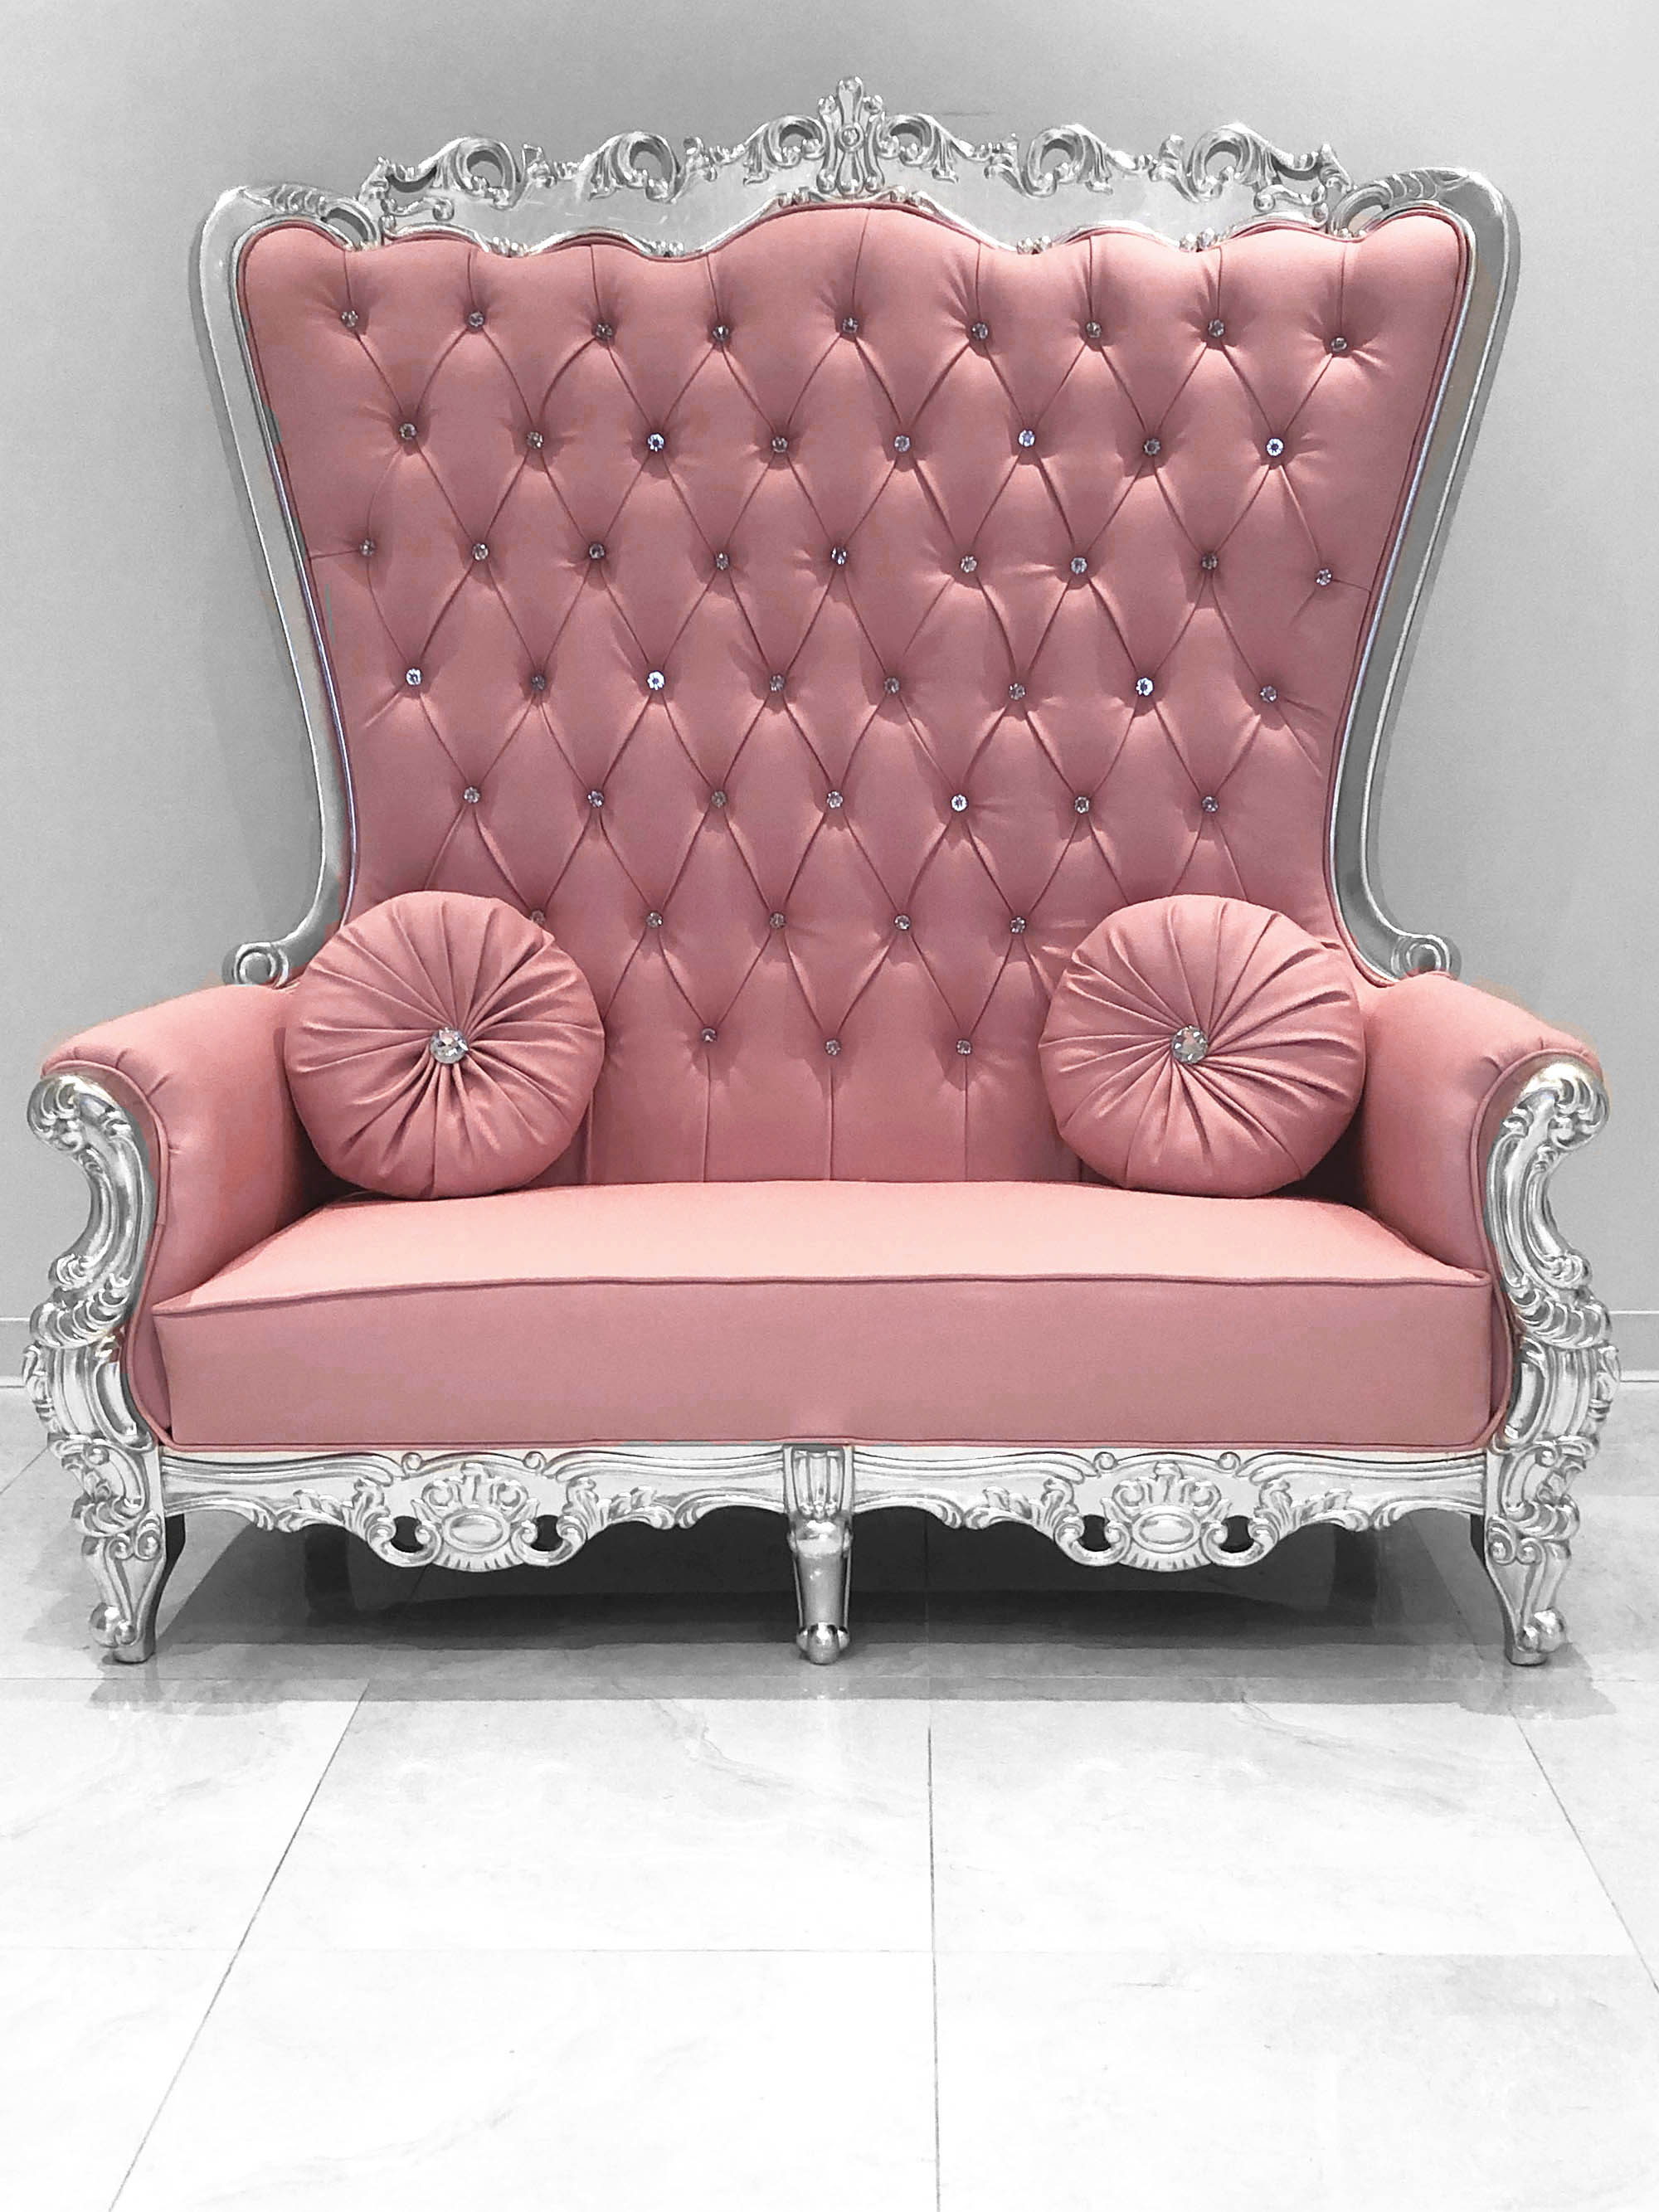 Fabulous Double High Back Queen Throne Chair In Pink Leather And Dailytribune Chair Design For Home Dailytribuneorg